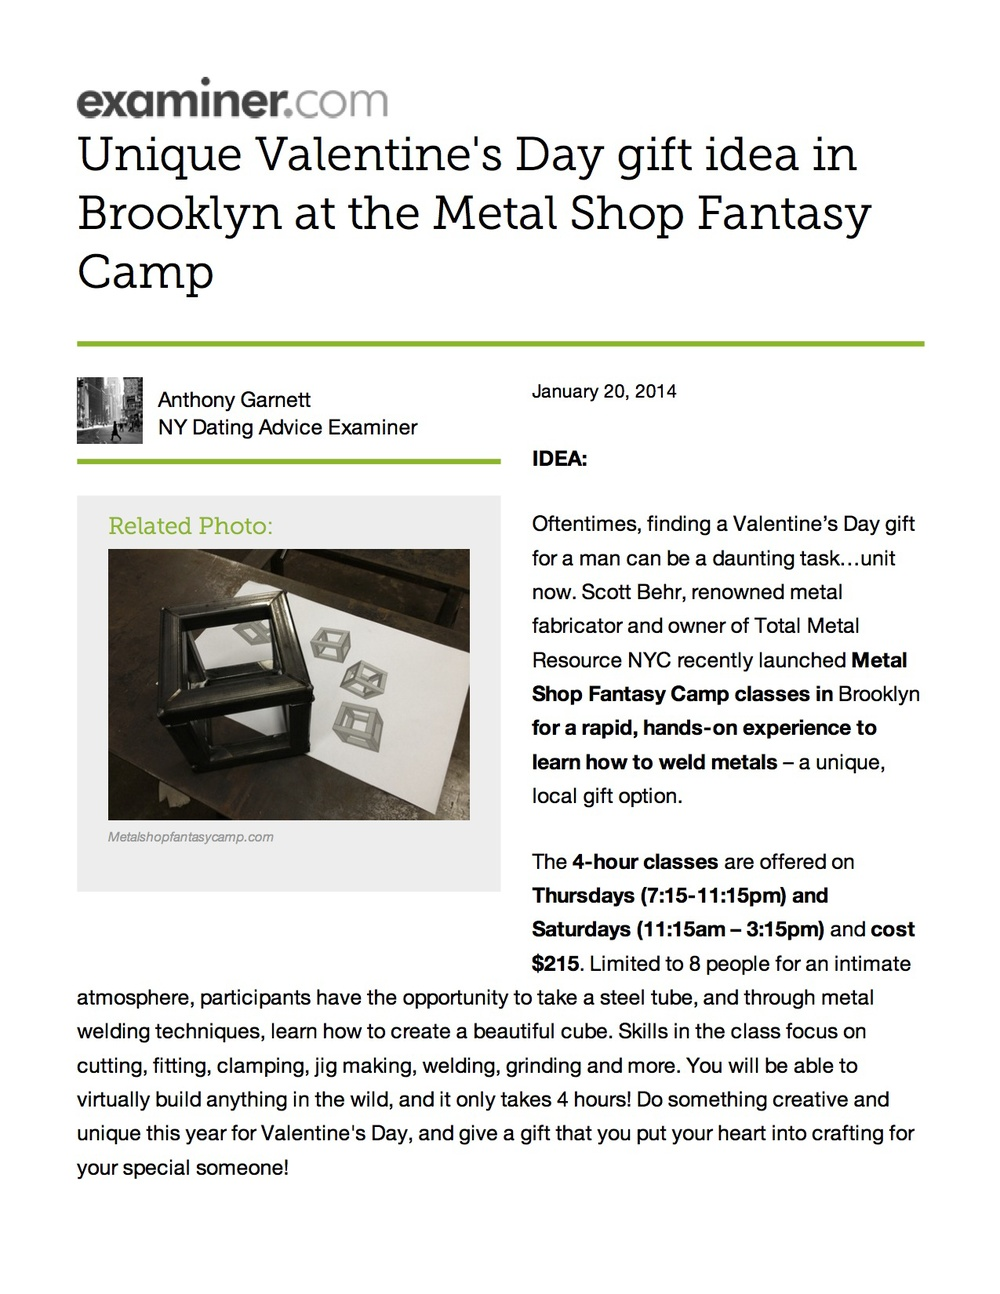 Examiner.com features Metal Shop Fantasy Camp as a unique Valentine's Day gift for your sweetie.